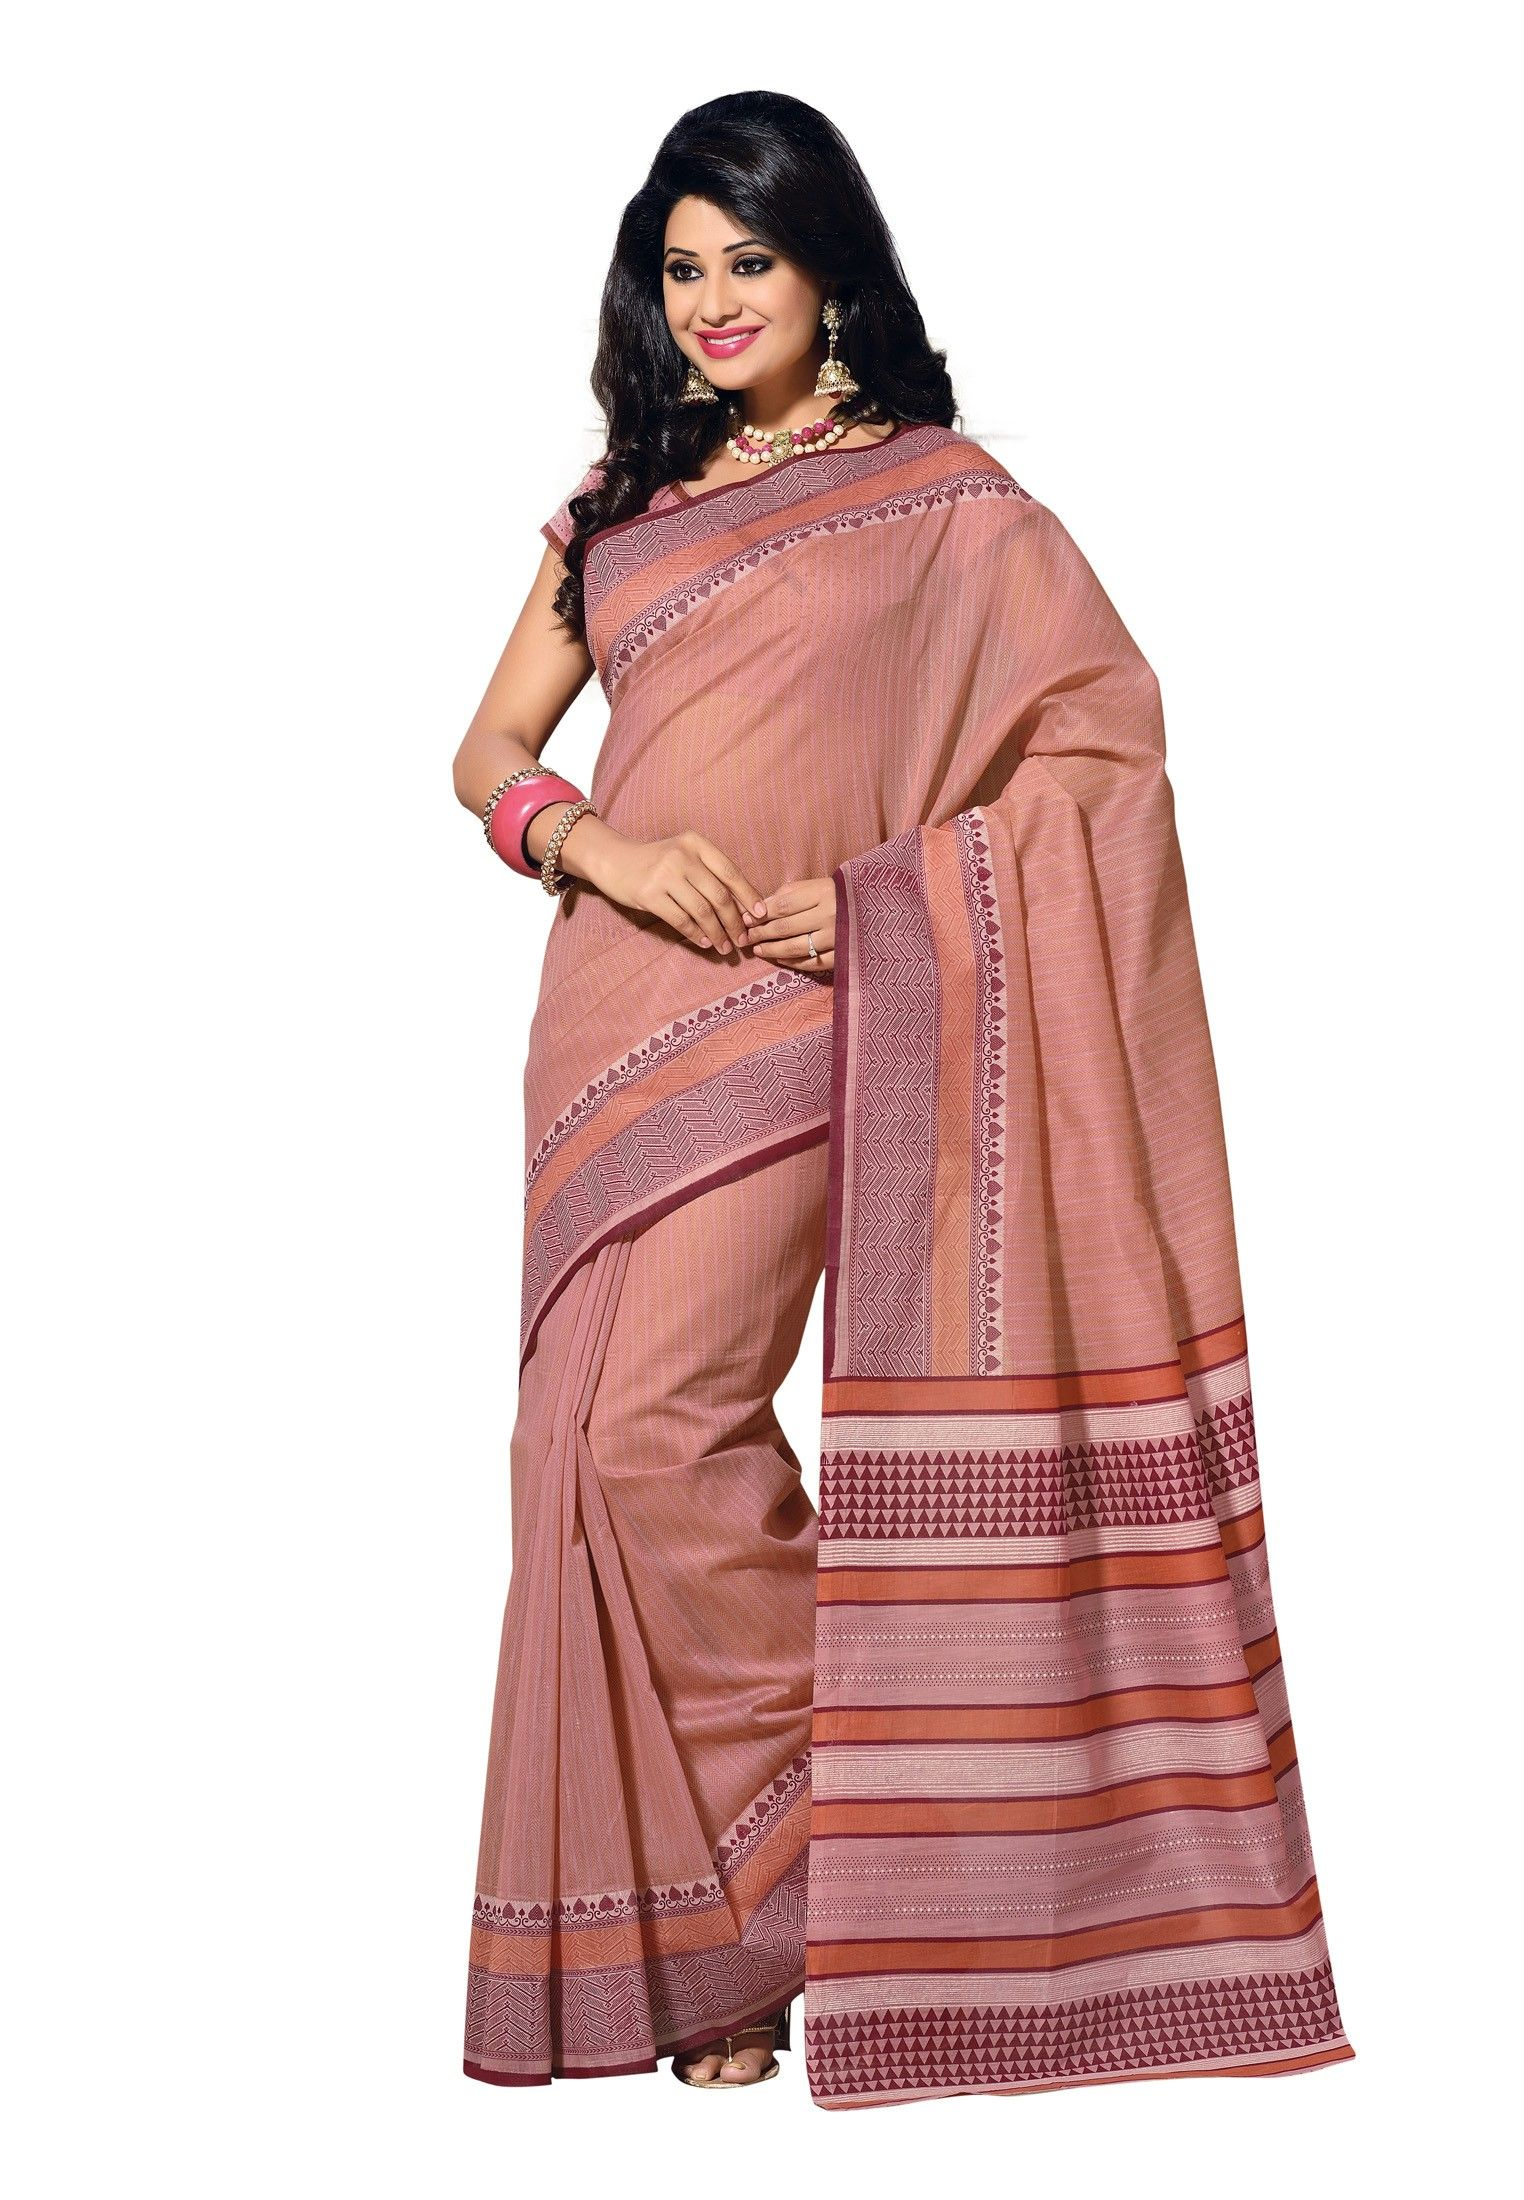 Digital #Cotton Printed #Saree Enroll to get yourself fashionised by this lovely light pink colored saree paired with an equally sensational light pink colored blouse is going to be a major hit in your group. The saree is fabricated in the softest of cotton and graced with a geometric print adding charm to this attire. Available in 12% Discount @aimdeals